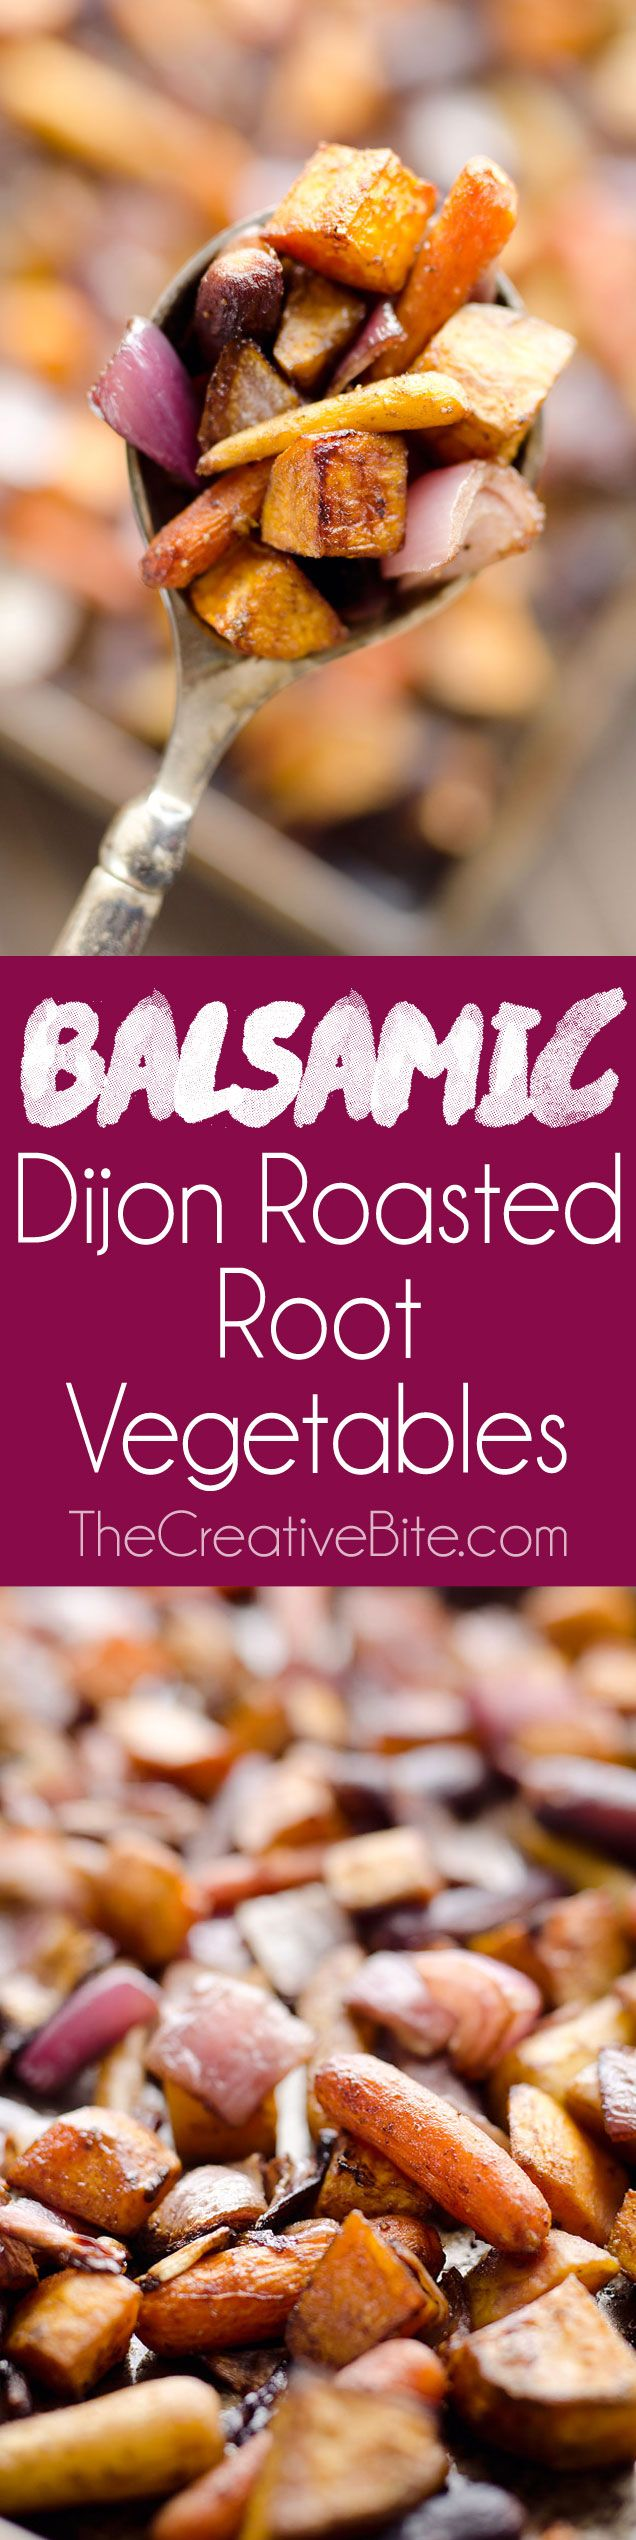 Balsamic Dijon Roasted Root Vegetables is an easy and healthy side dish bursting with tangy balsamic flavor and loaded with sweet potatoes, carrots and onions. #Vegetarian #SideDish #Healthy